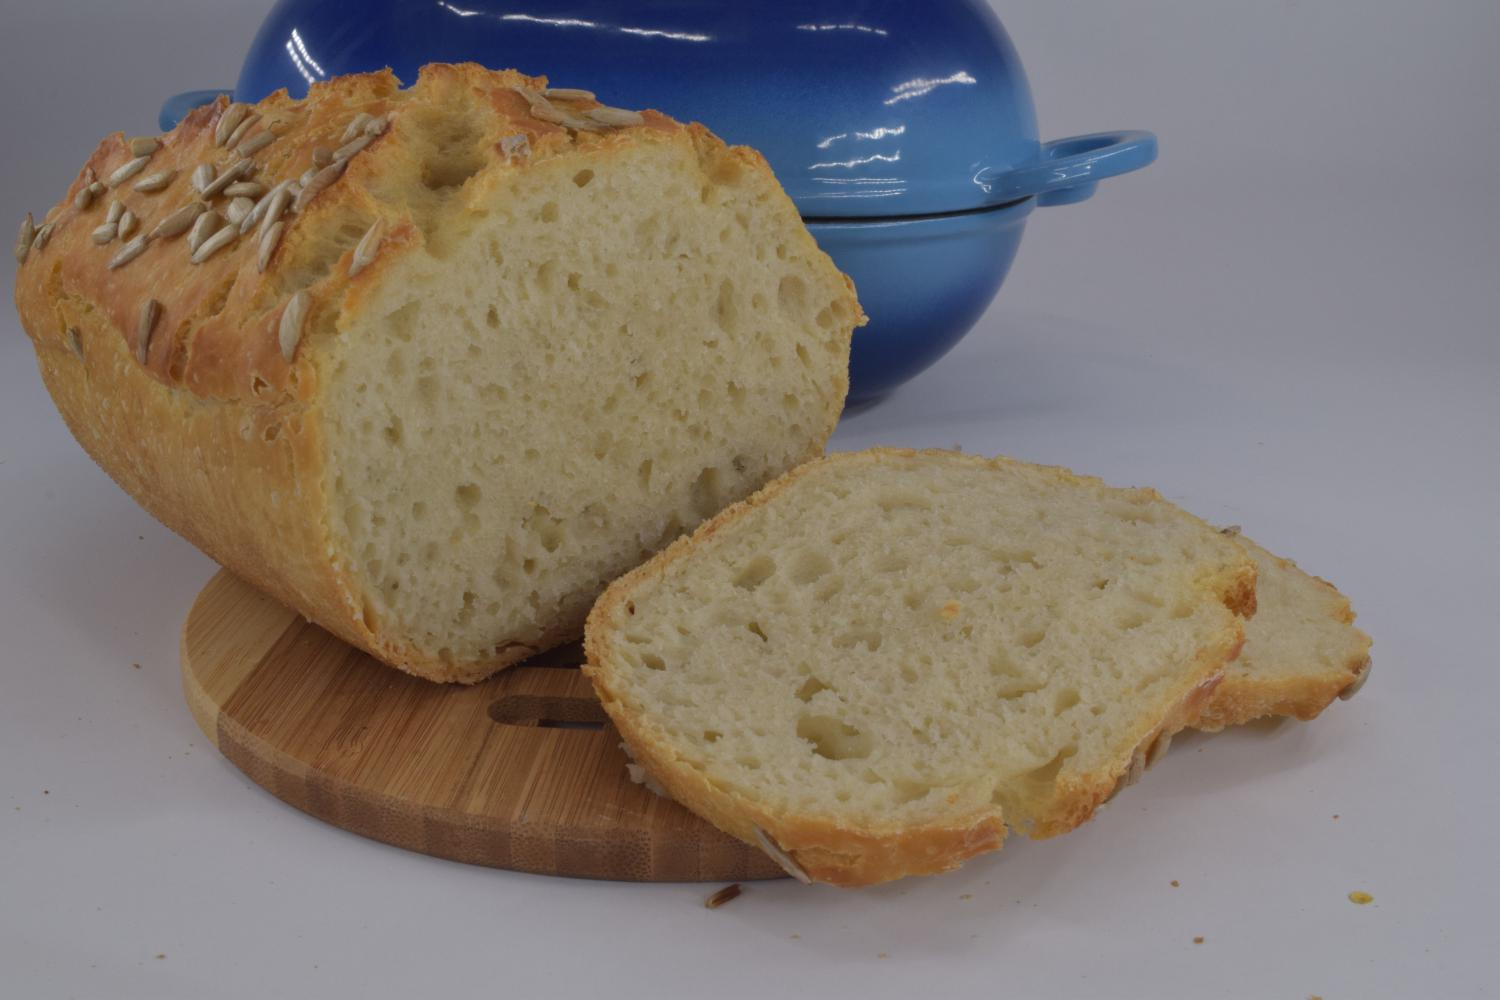 Airy crumb of LoafNest yogurt loaf